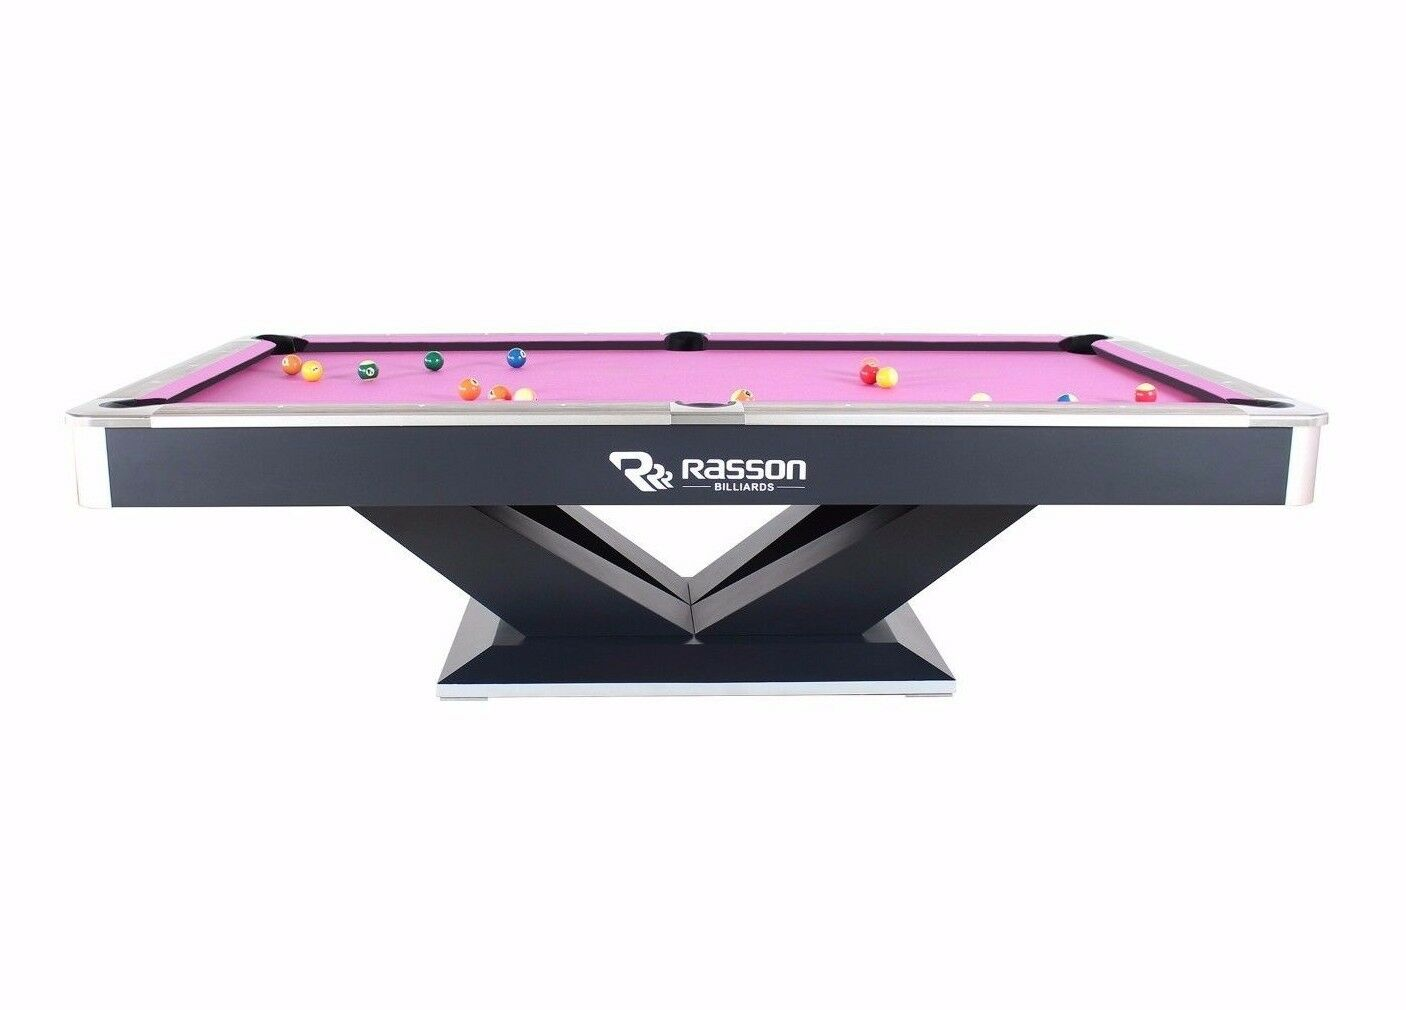 Rasson Pool Table 9' Pro Victory Tournament Commercial w/ FREE Shipping